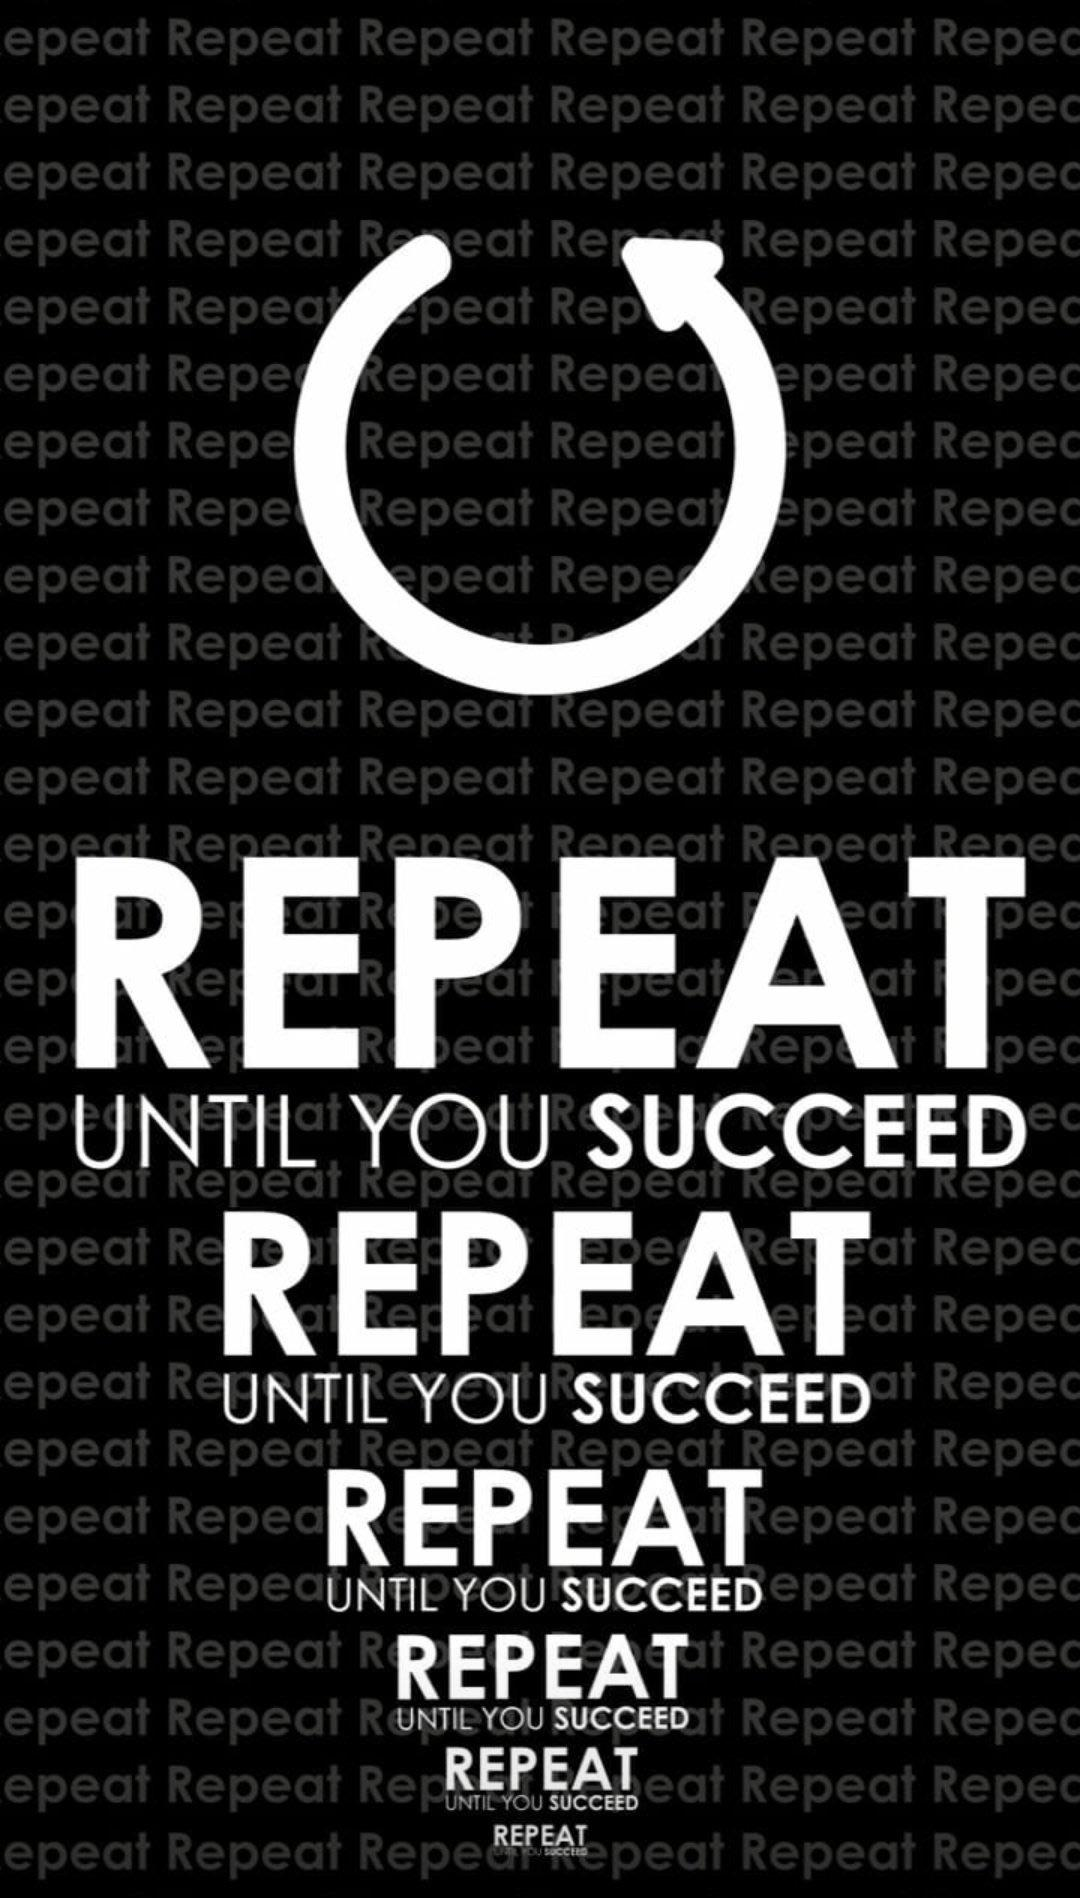 [Image] Repeat then repeat again.